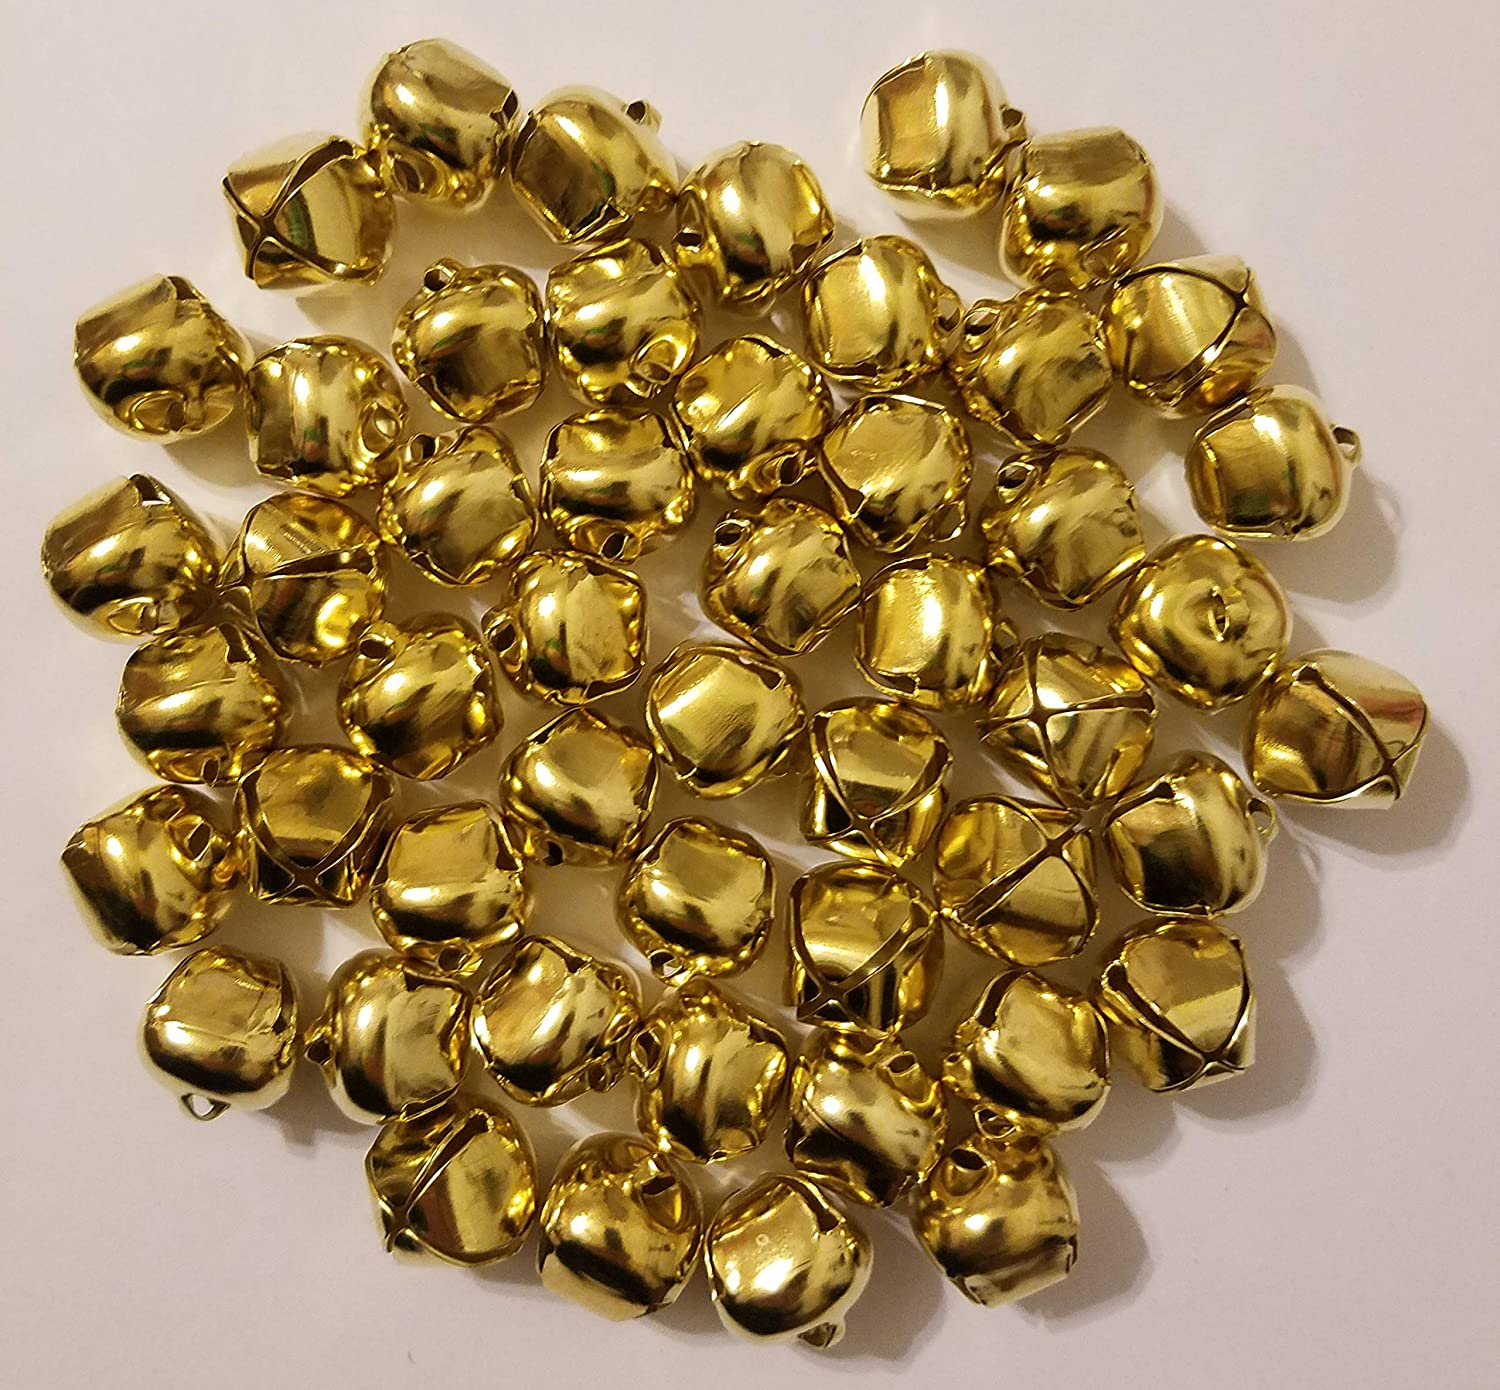 3//4 20mm Pack of 50 Shiny Gold Metal Craft Jingle Bells